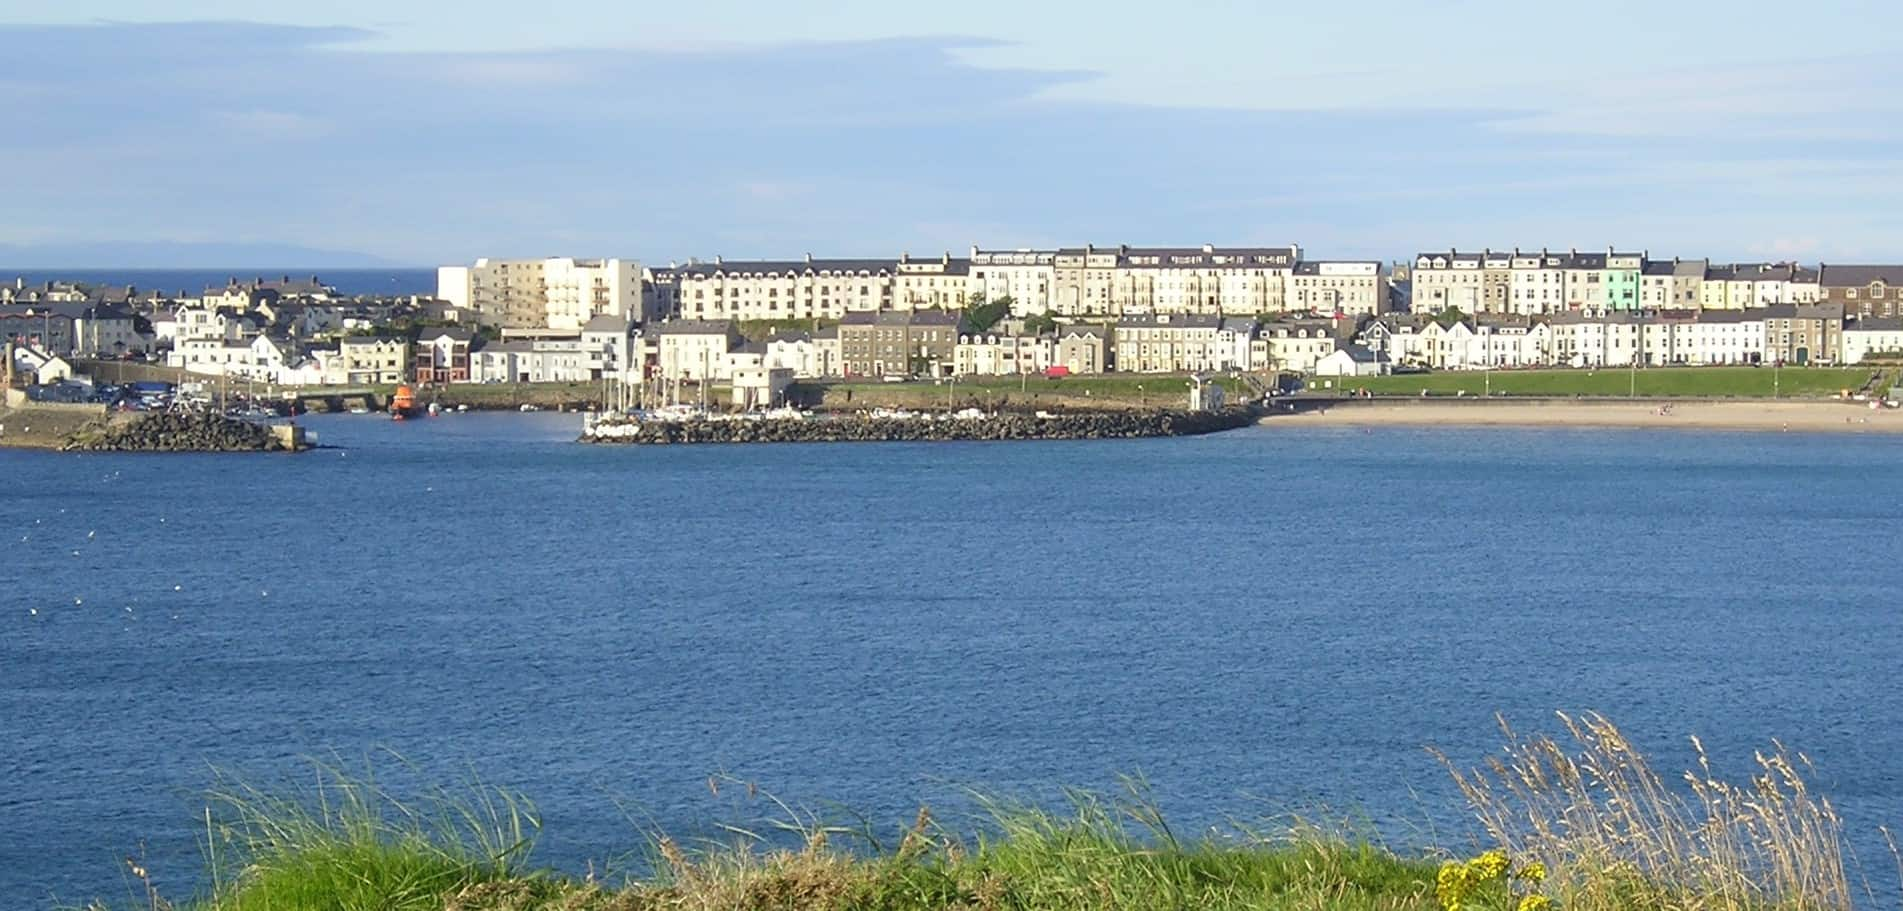 Things To Do in Portrush: Attractions and Activities on the North West Coast